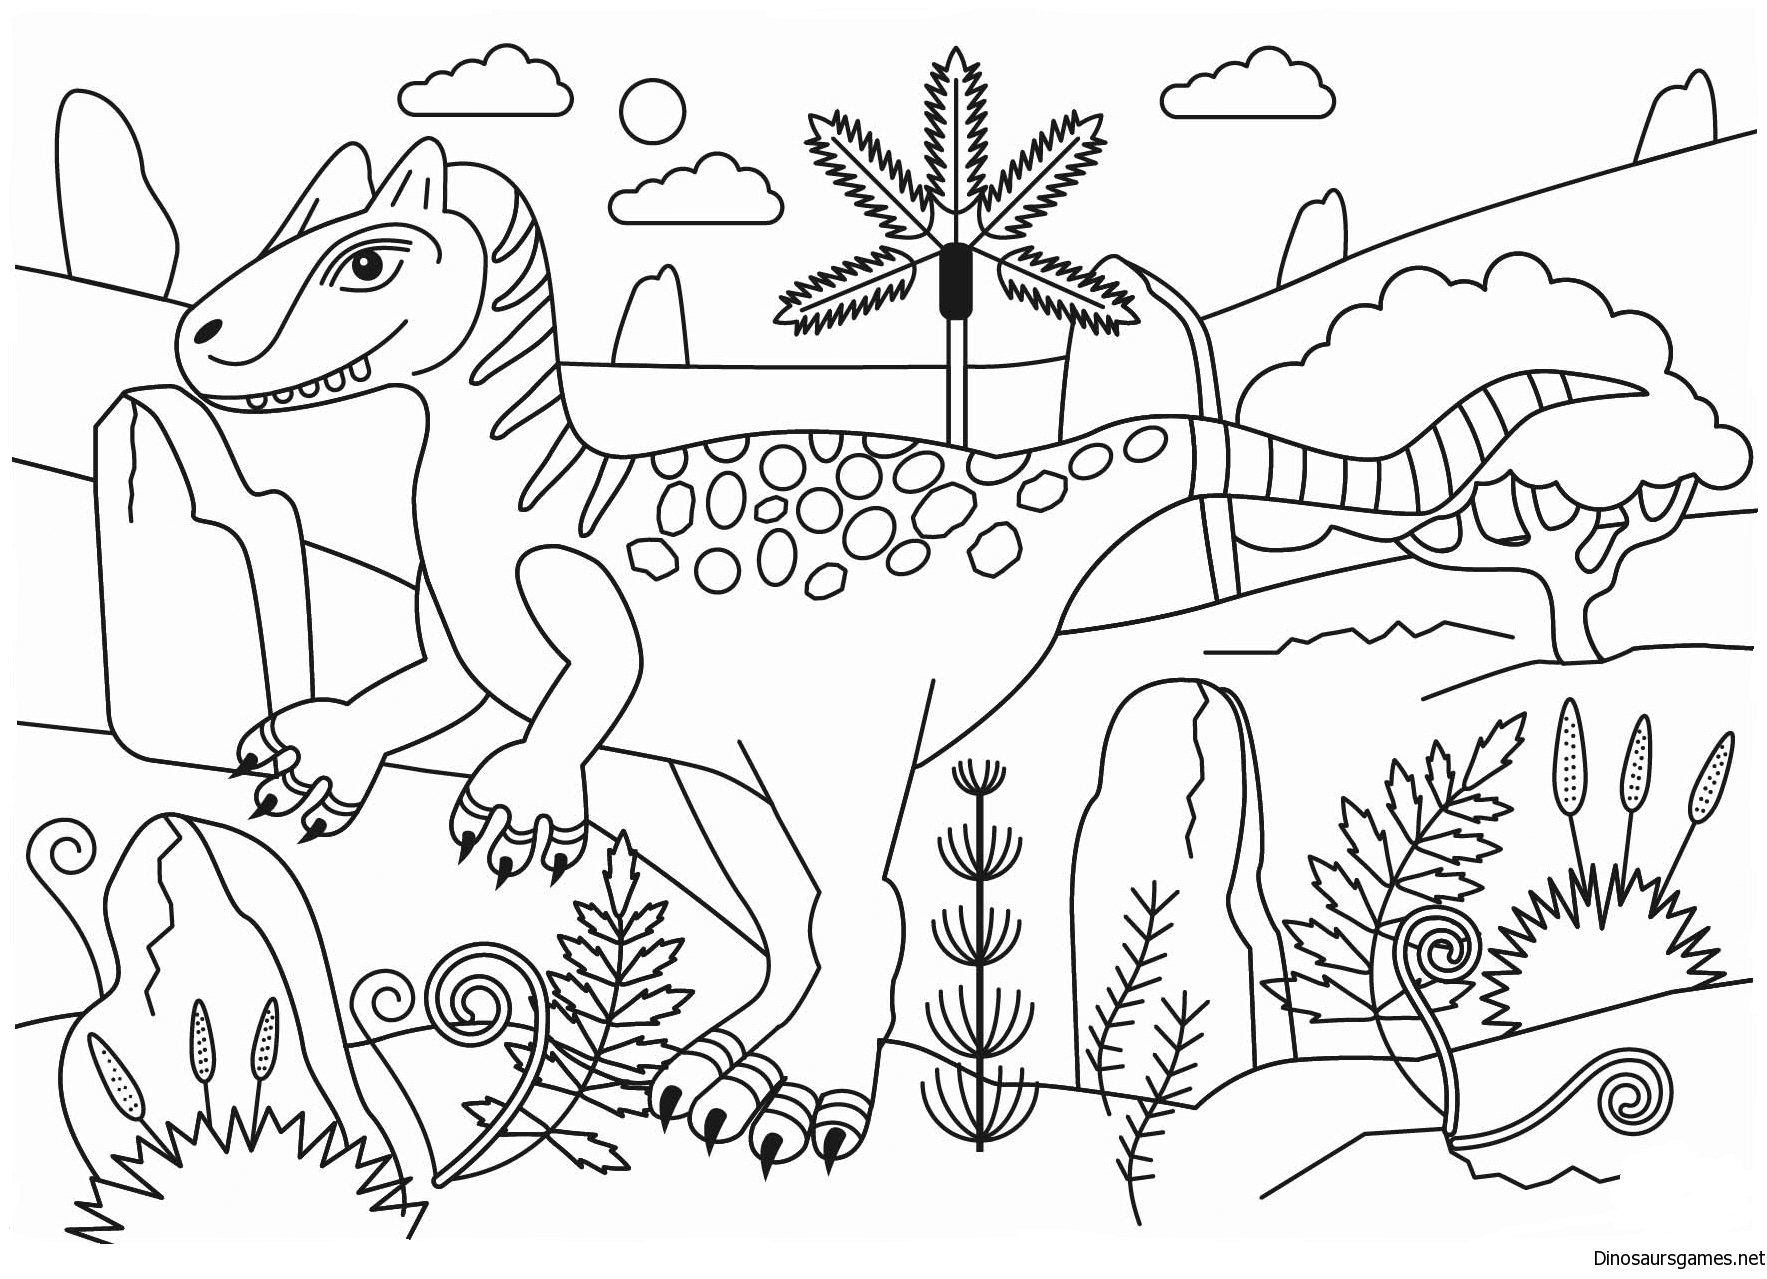 Allosaurus Coloring Page - Dinosaur Coloring Pages